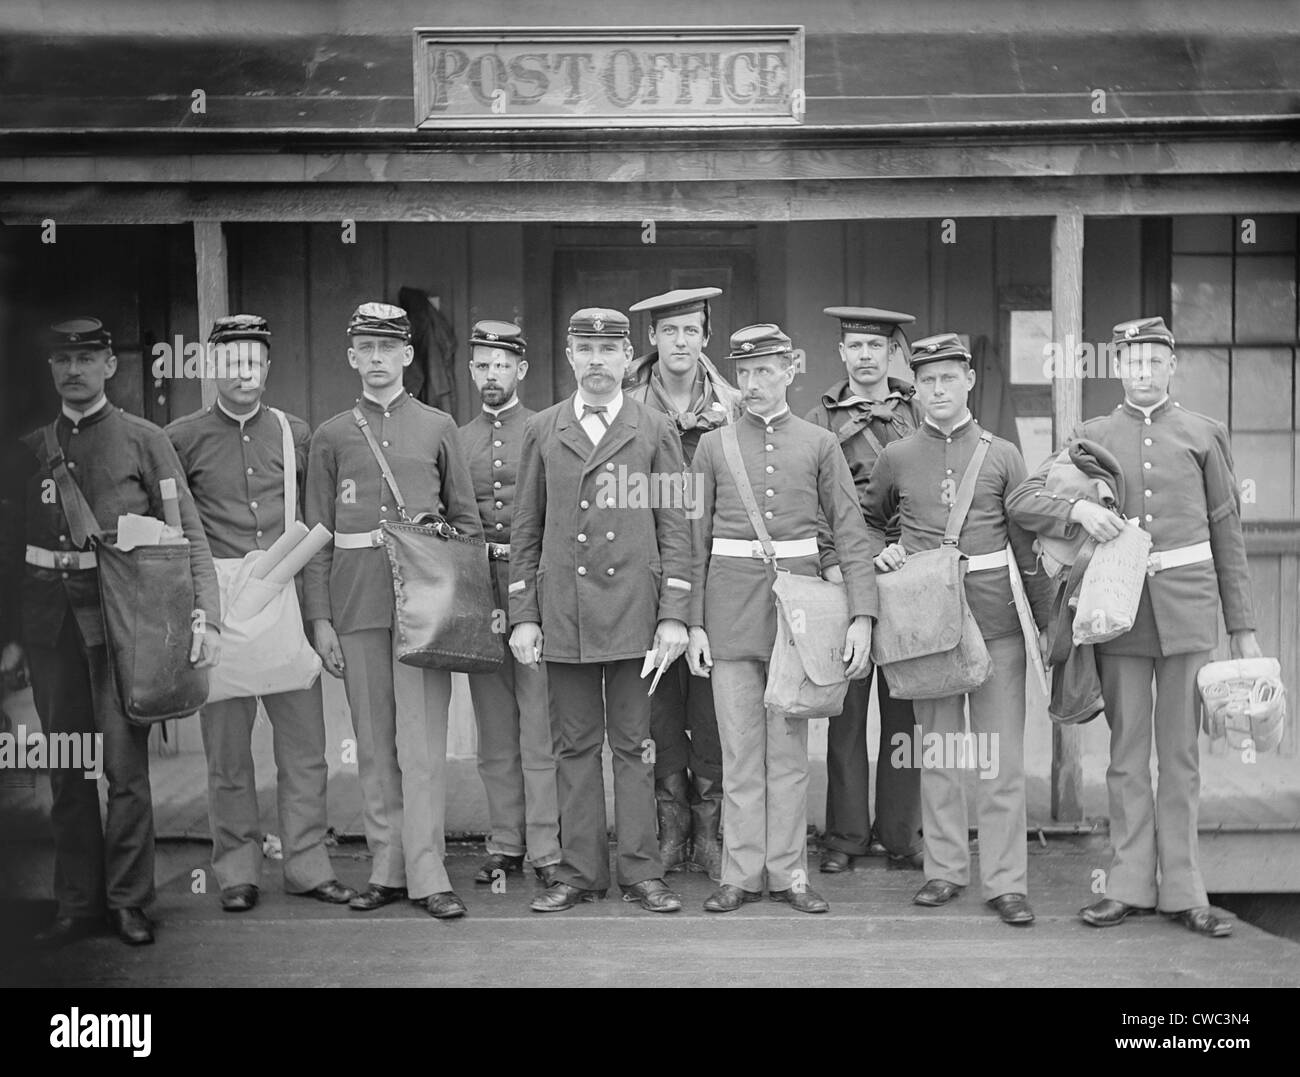 U.S. Military mail orderlies. Ca. 1890-1901. (BSLOC_2010_18_86) - Stock Image